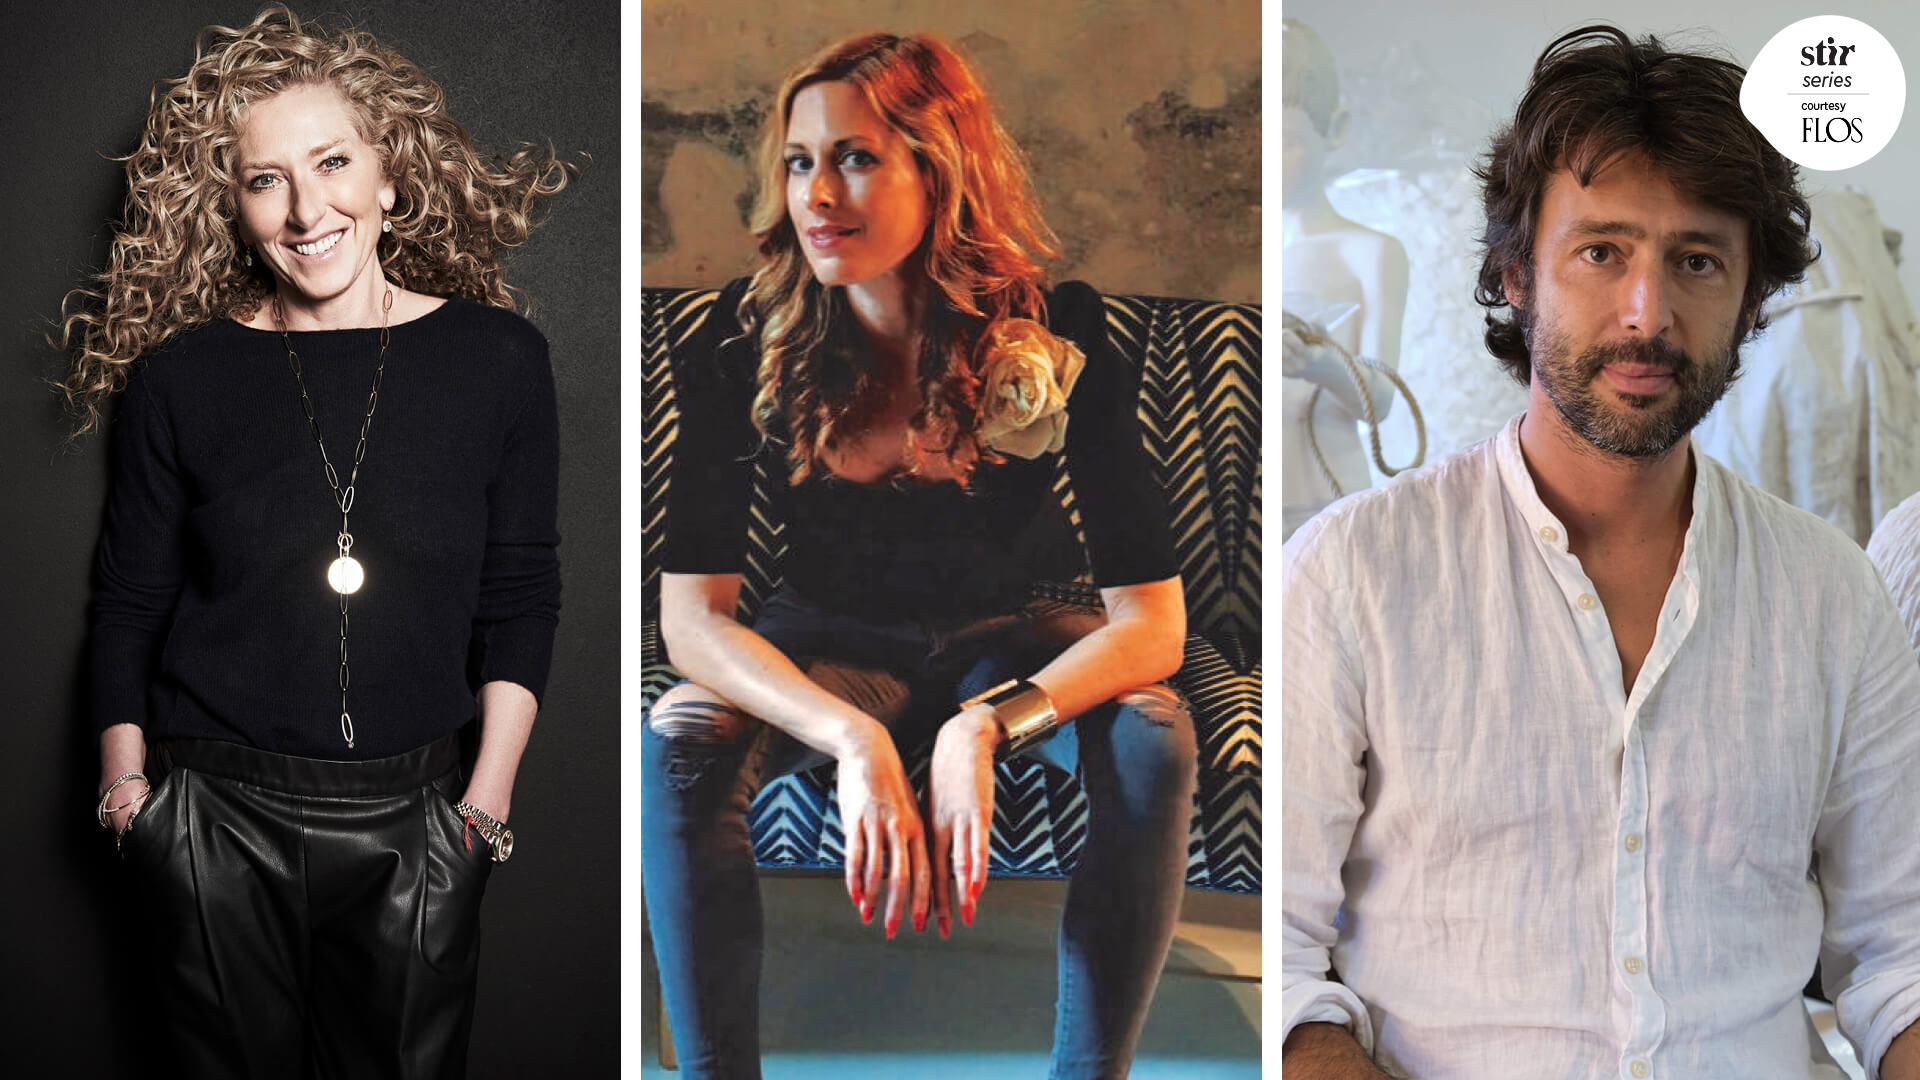 Miss You, Milan: Kelly Hoppen, Nika Zupanc, Marcantonio Malerba in reflection